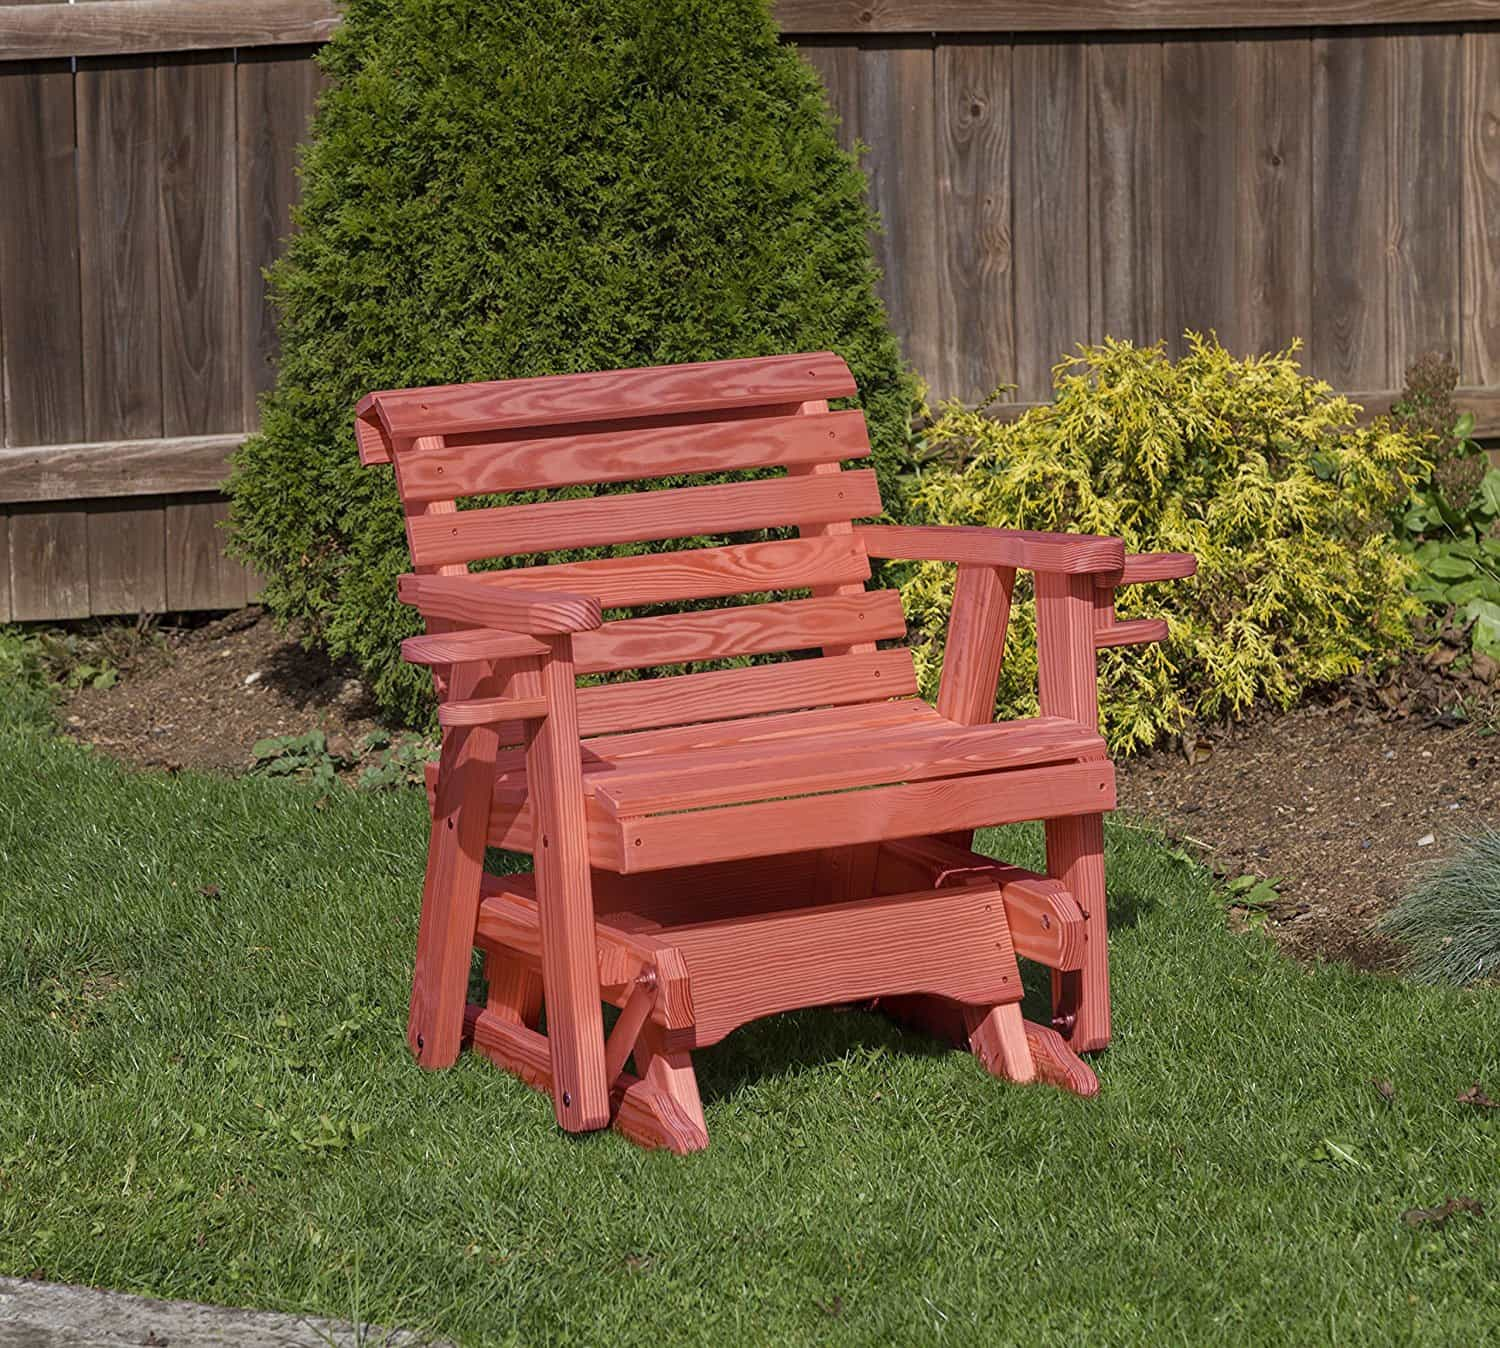 Amish Roll Back Pressure Treated Pine 2 Ft-cup holders GLIDER CHAIR